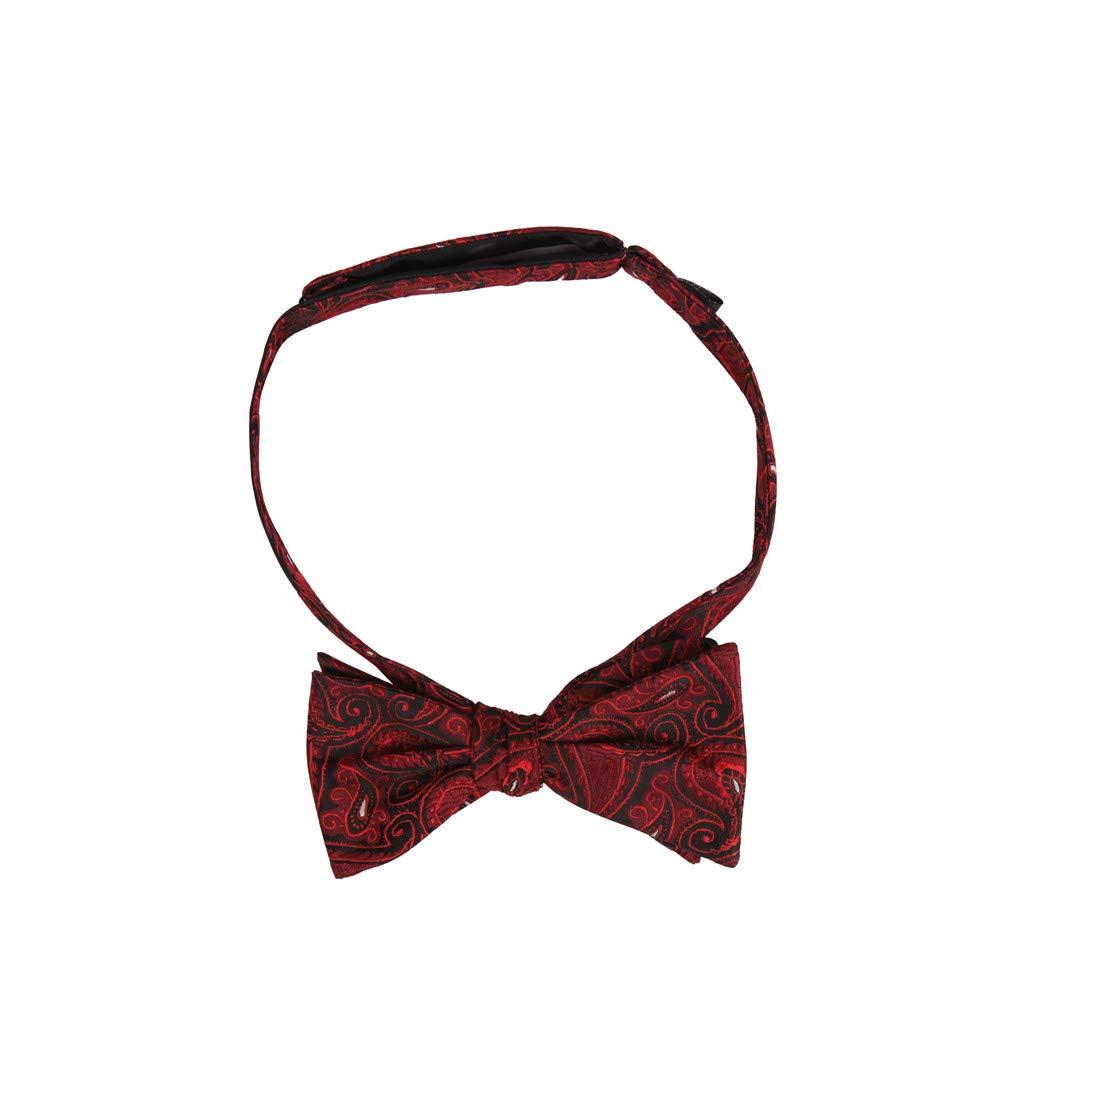 Dark Red, Black, Red-EBA1B08D Epoint EBA1B08D Red Business Classic Classic Classic Contemporary Self Bowtie Accessories Luxury Microfiber Patterned Valentines Gift for Mens 020ff1